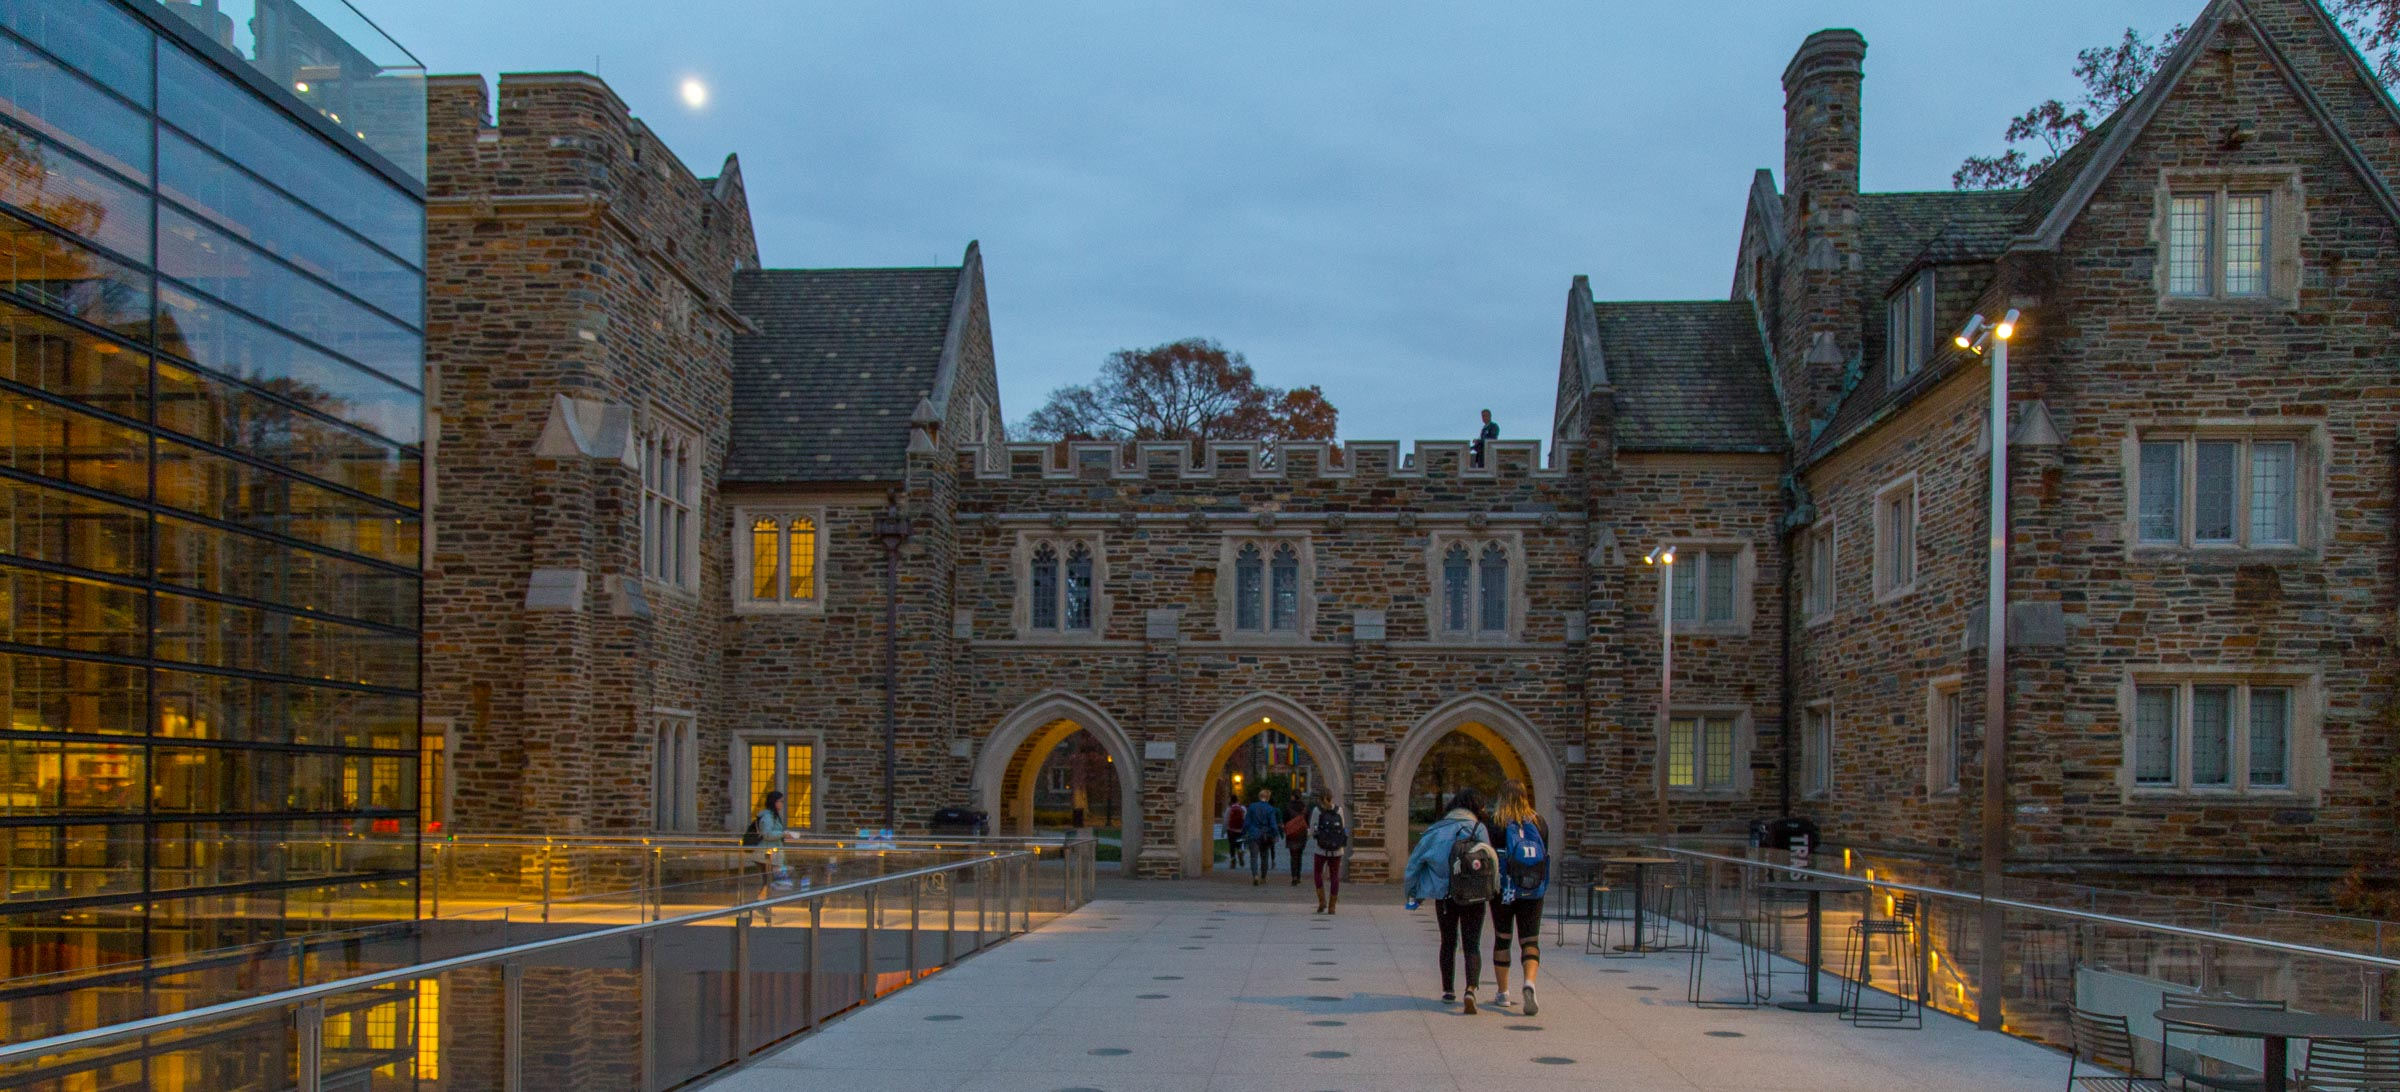 students walking through campus at night